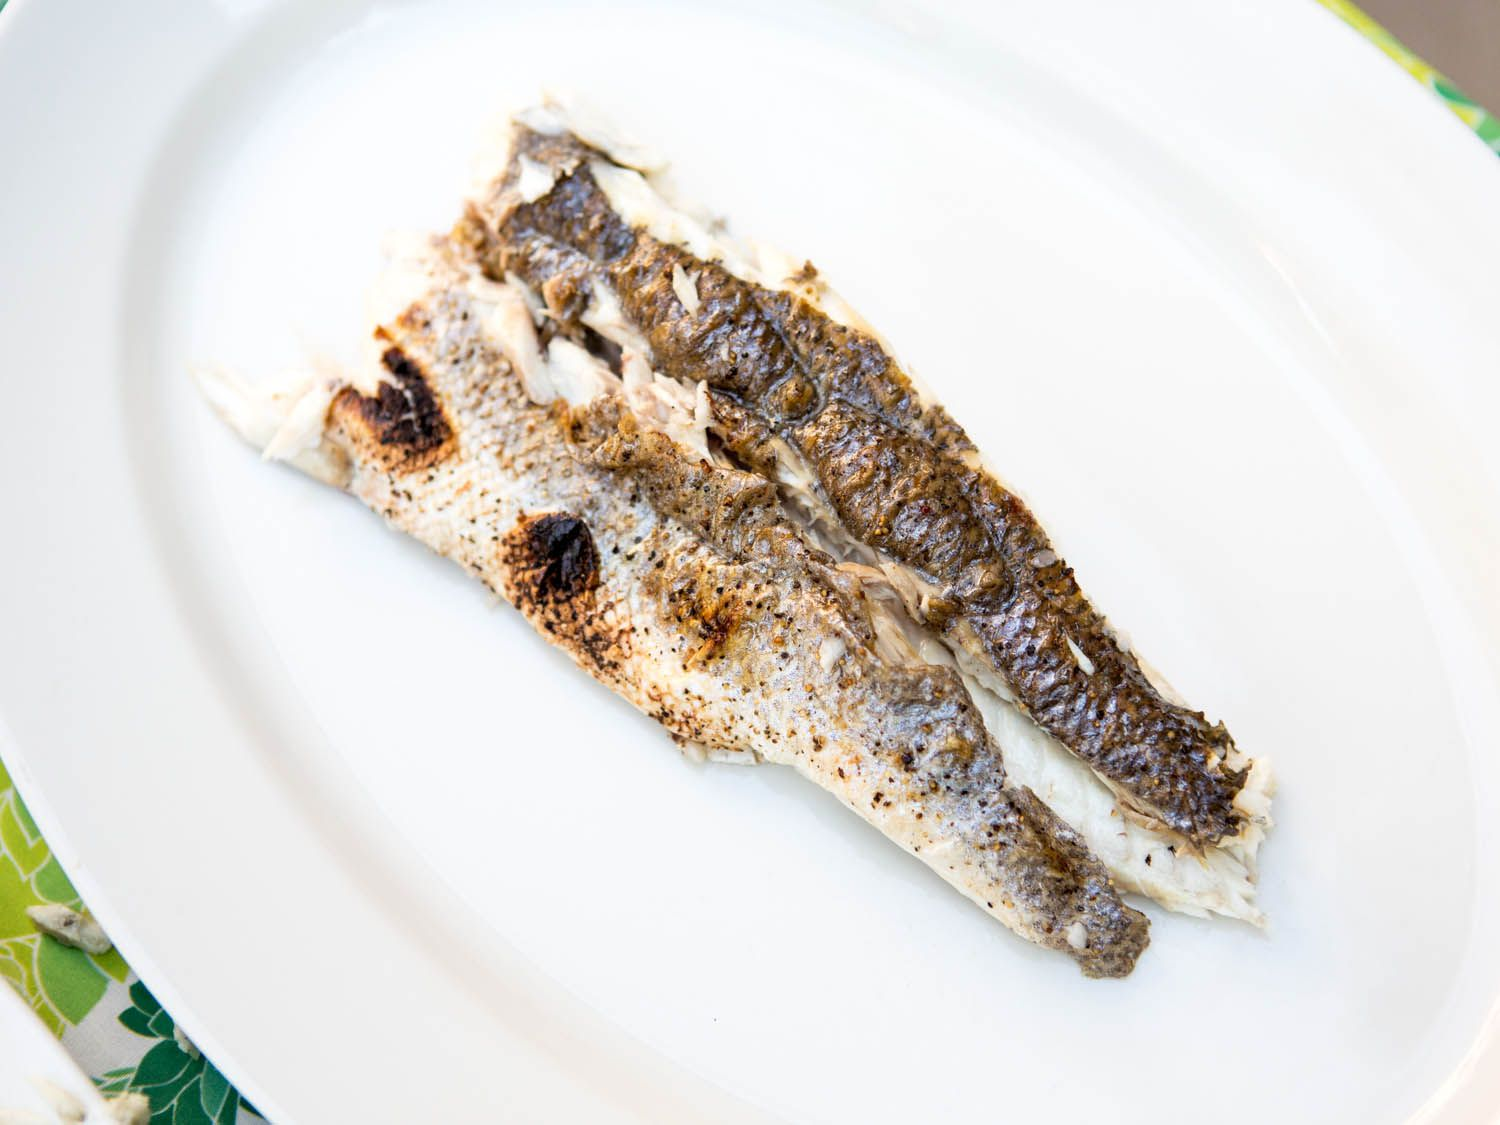 20140708-how-to-serve-whole-fish-vicky-wasik-33.jpg